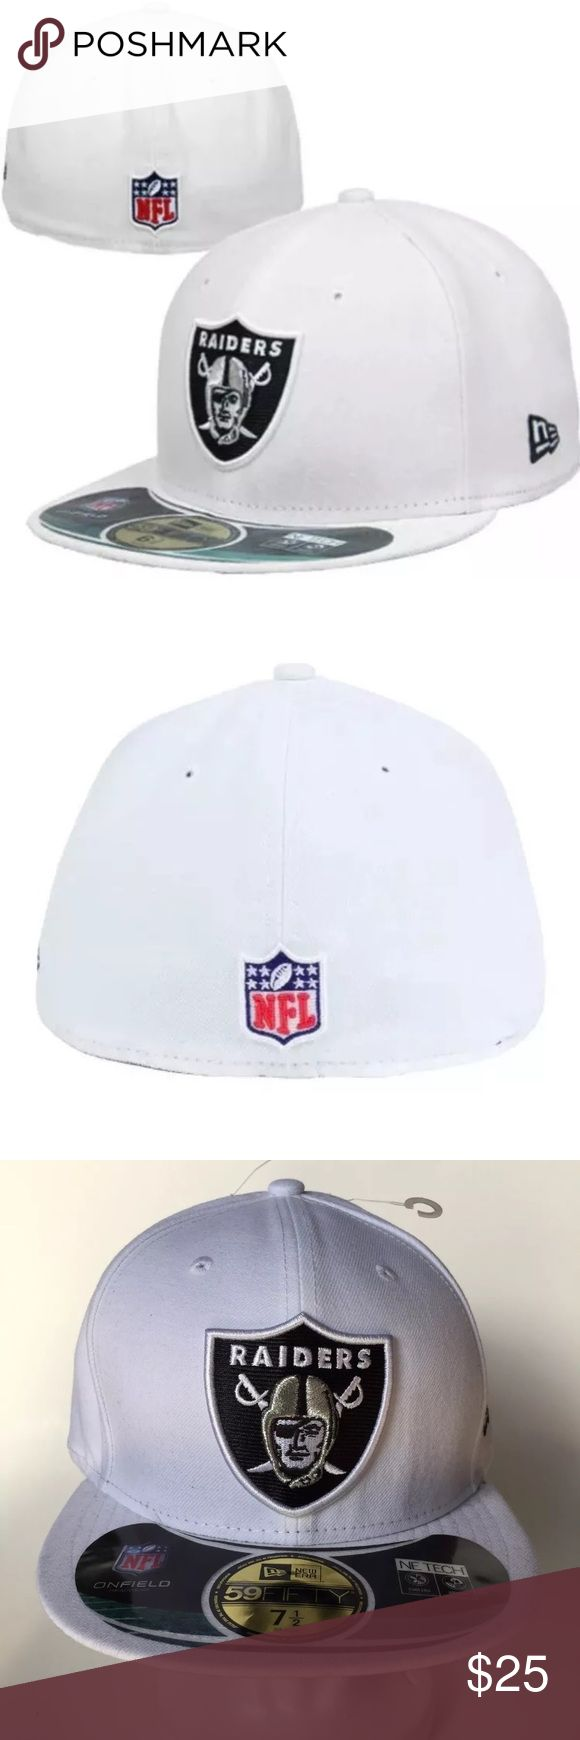 New Era 59Fifty Oakland Raiders On Field Hat 7 1/2 New Era 59Fifty Oakland Raiders Official On Field Fitted Hat Cap Size 7 1/2  Brand : NewEra  Style : 59Fifty  Size : 7 1/2  Color : White  Material : 100% Polyester  Embroidered black New Era logo on the left side of the hat New Era Accessories Hats